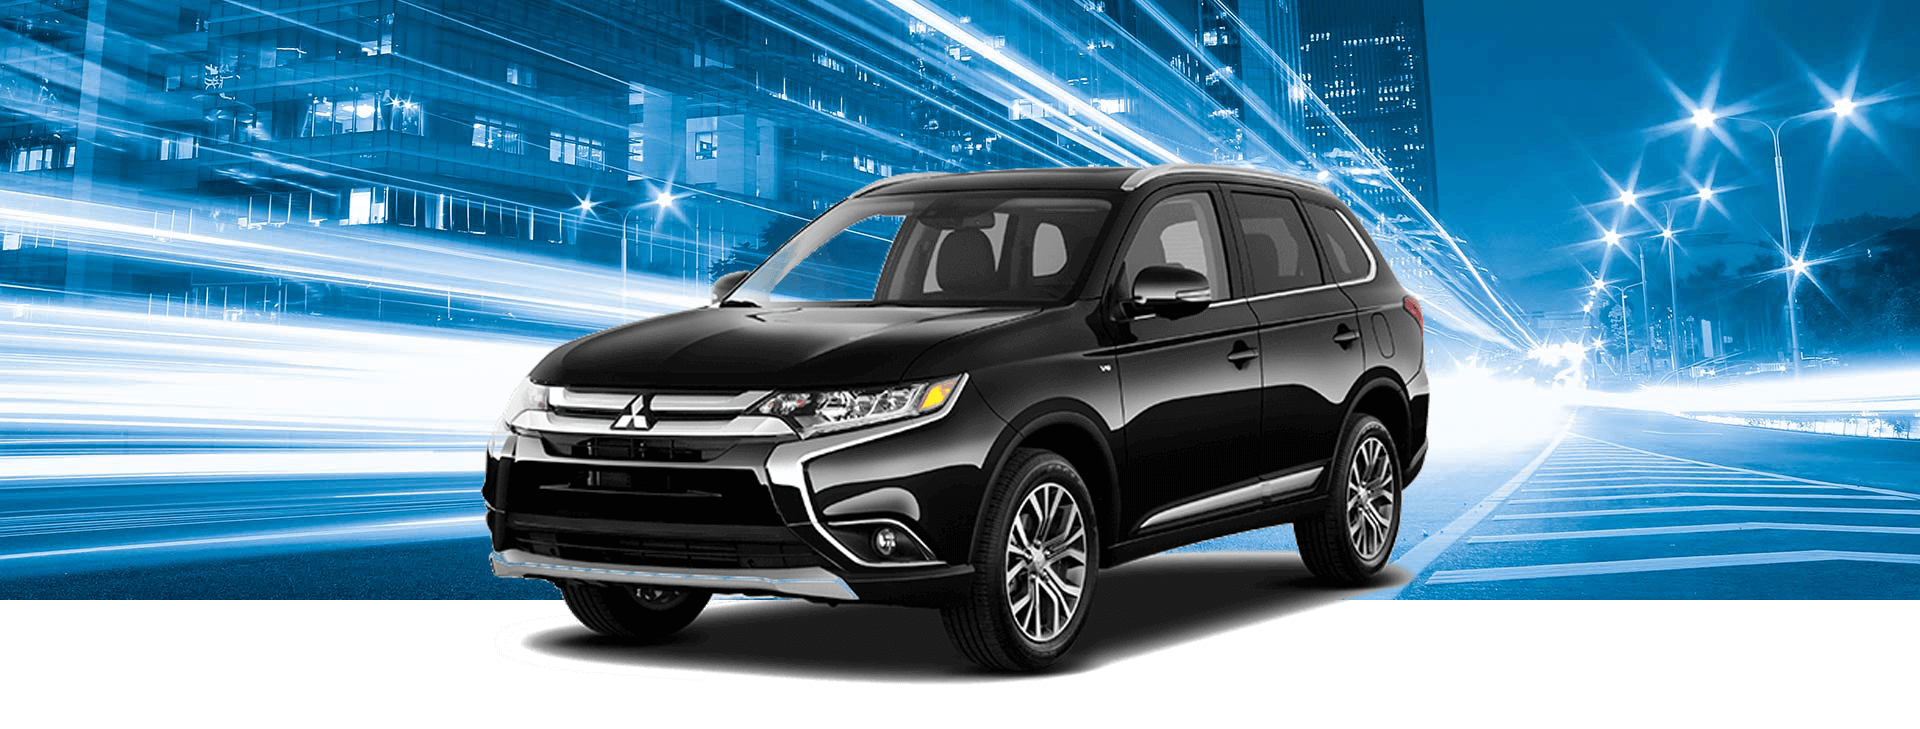 2018 Mitsubishi Outlander MLP with background